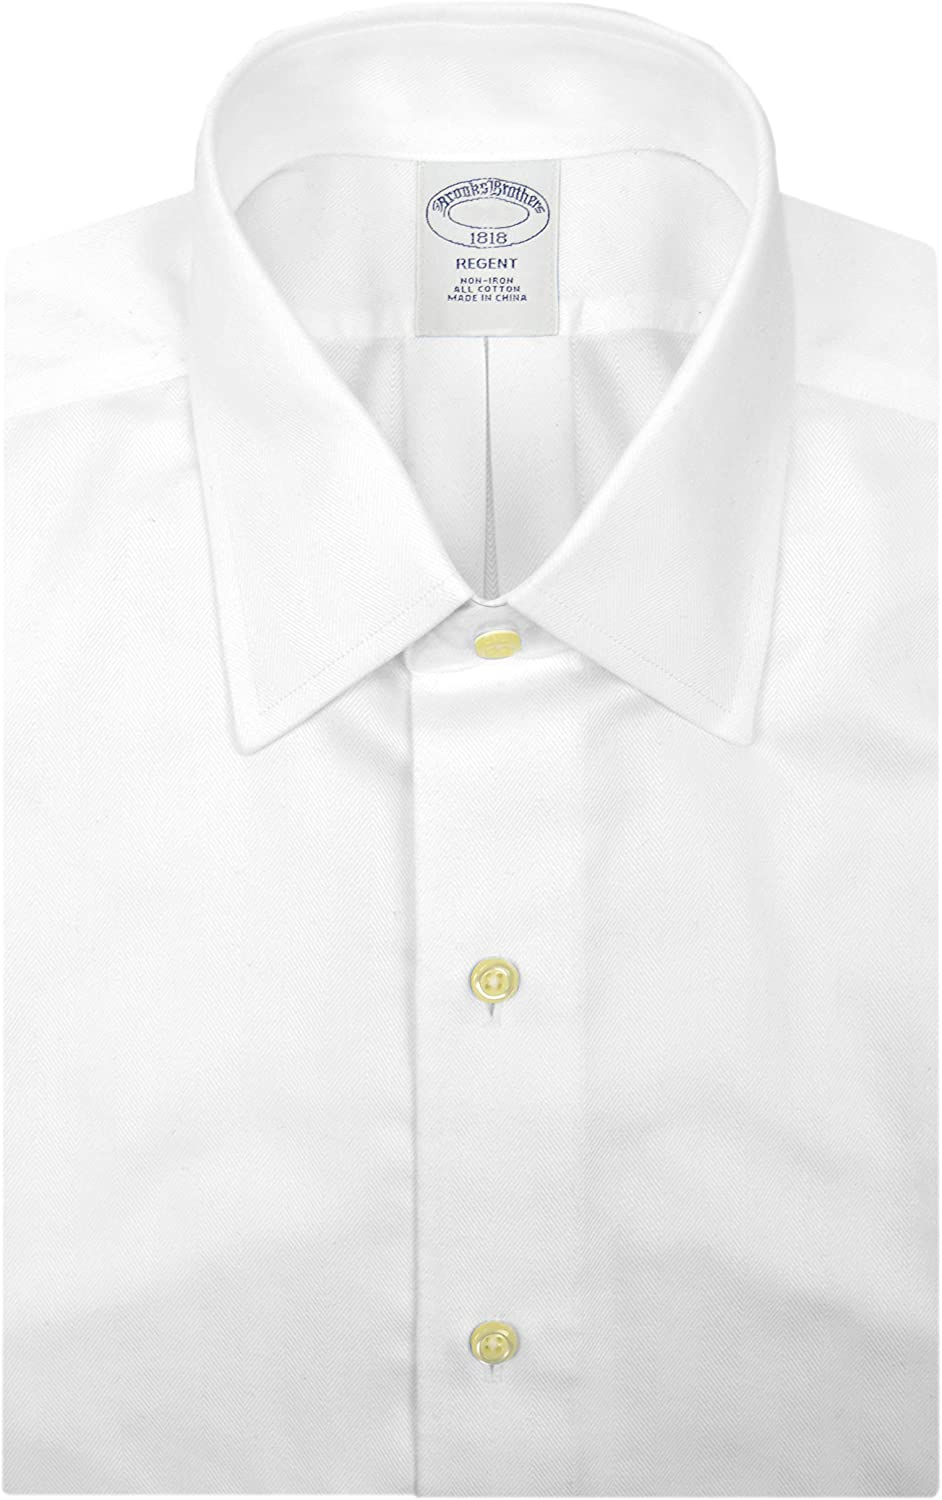 Men/'s Brooks Brothers Regent Dress Shirt White Cotton